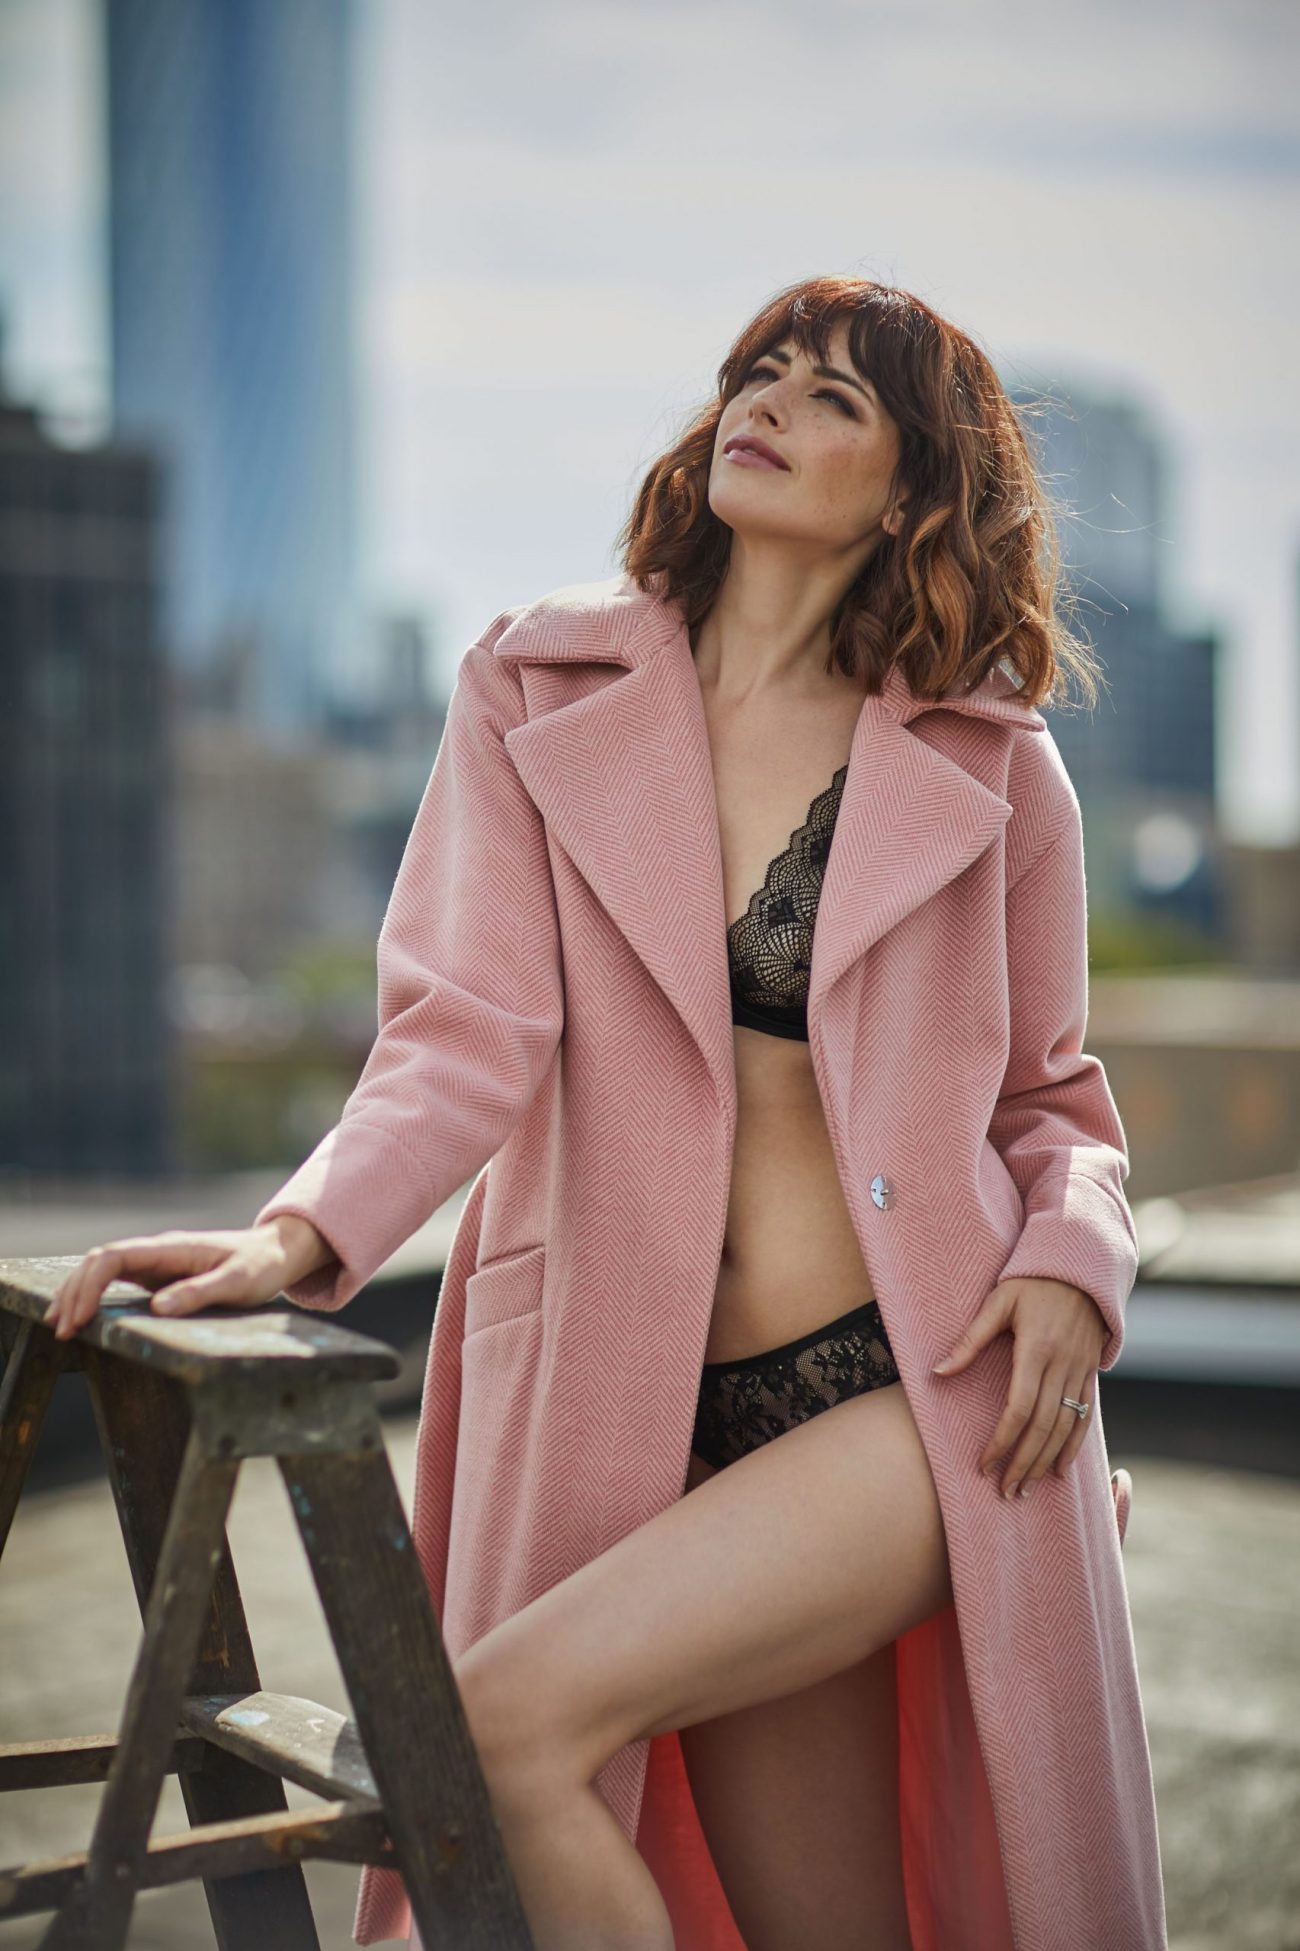 best chicago boudoir photography outdoor scaled - Listing E